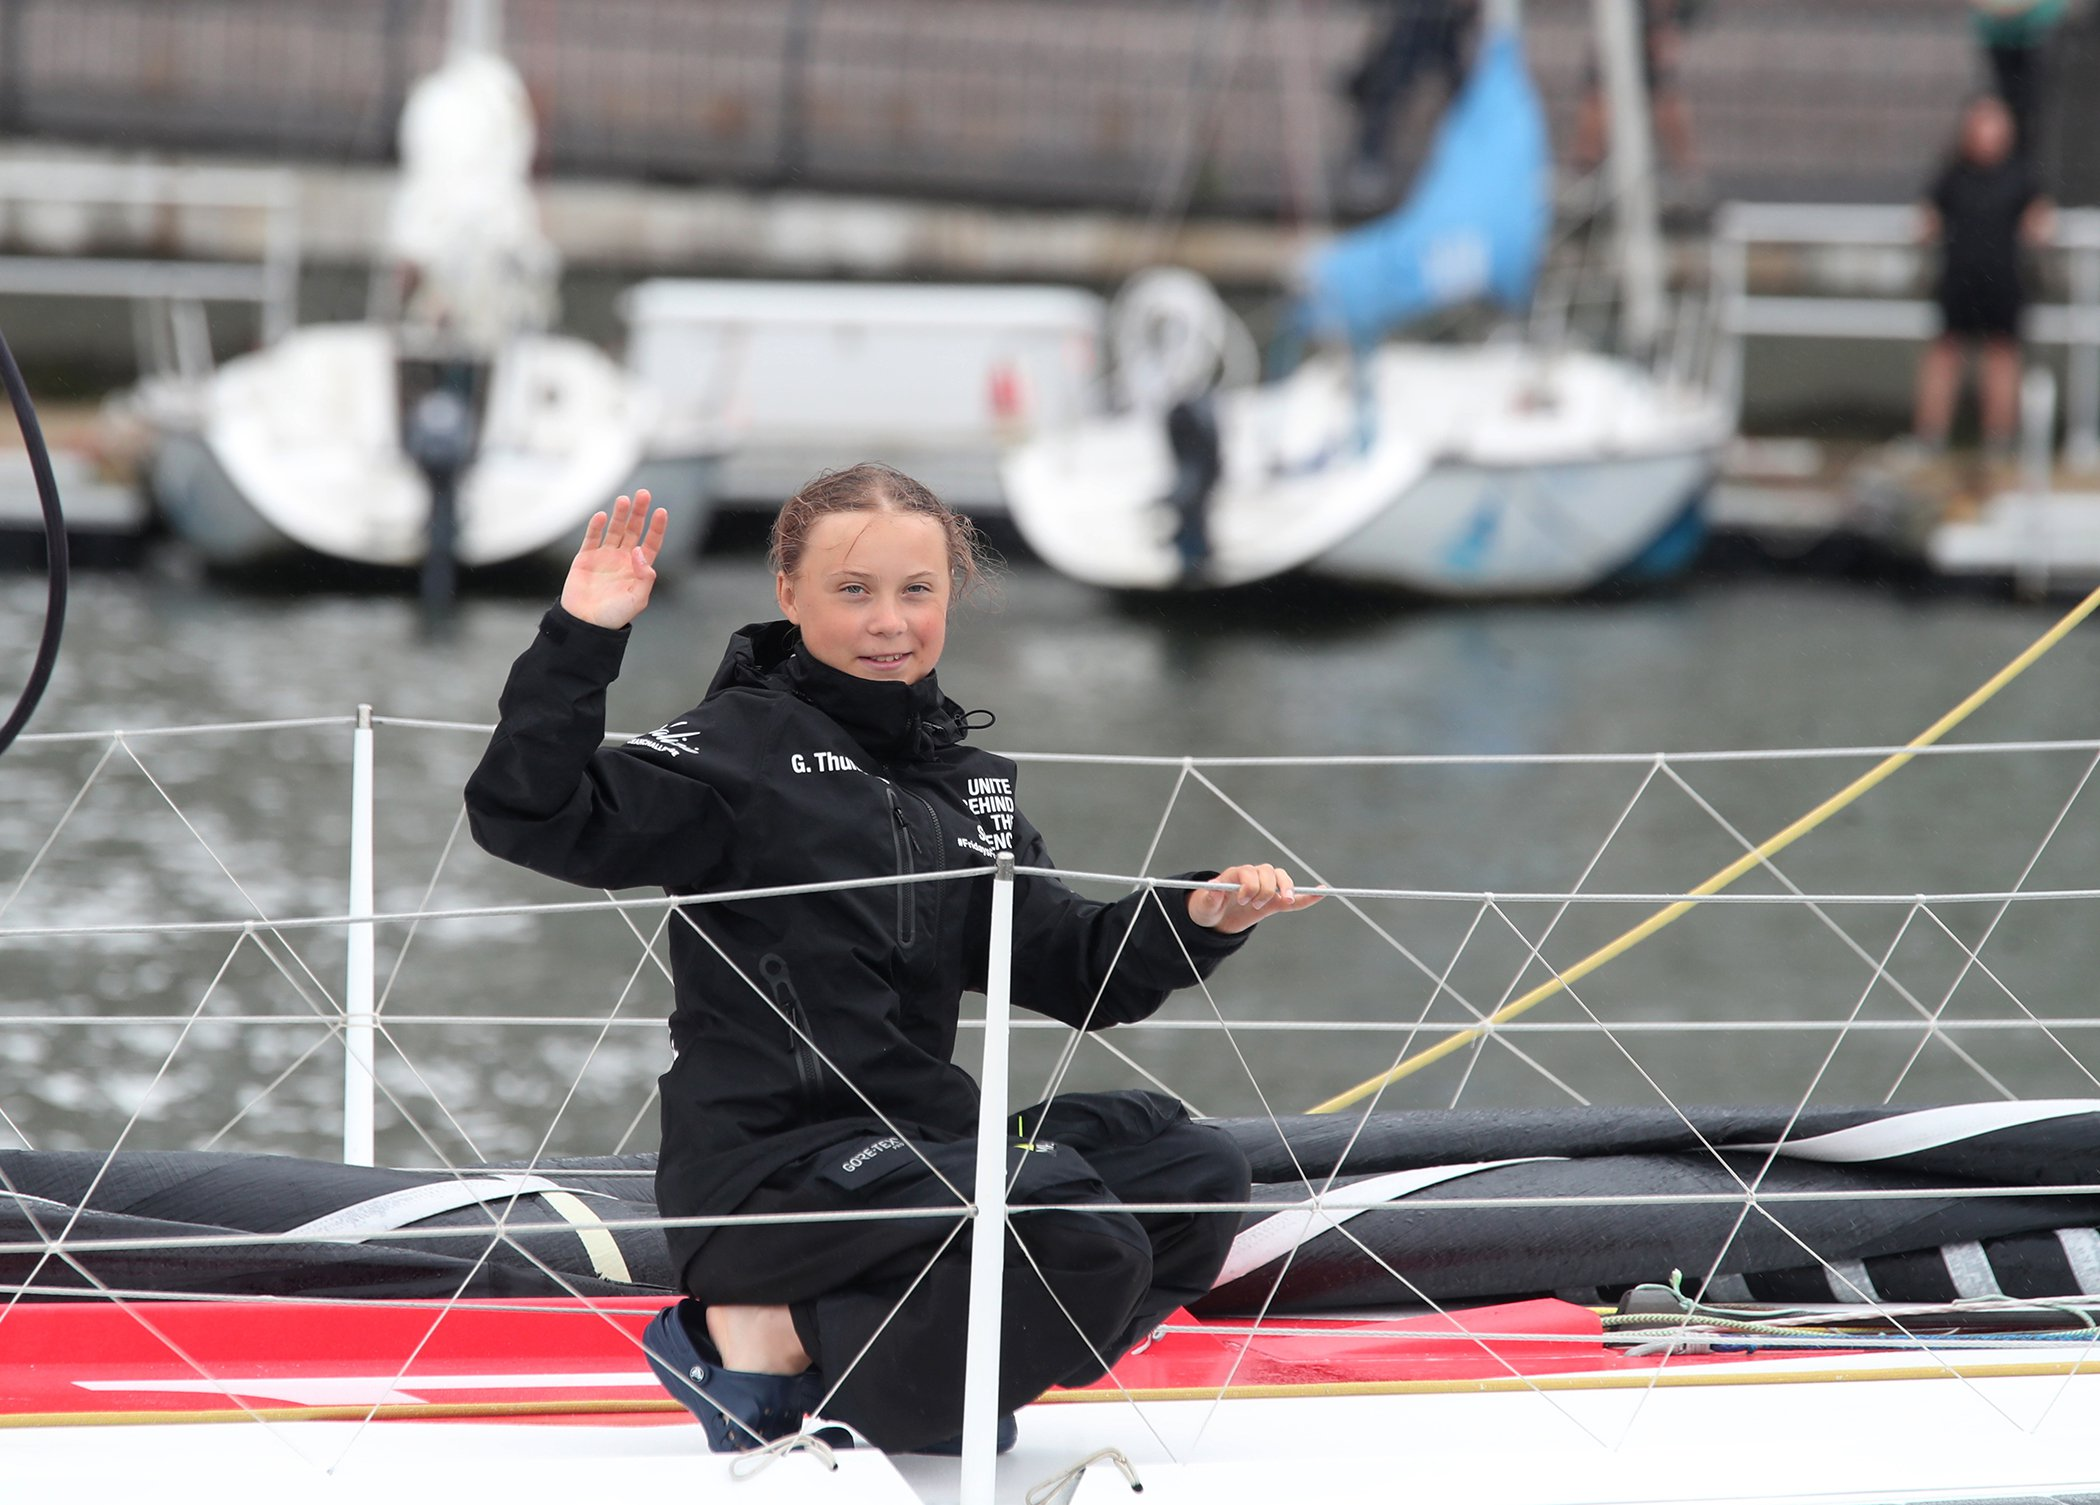 Greta-Thunberg-Climate-Action-NYC-Sailing.jpg